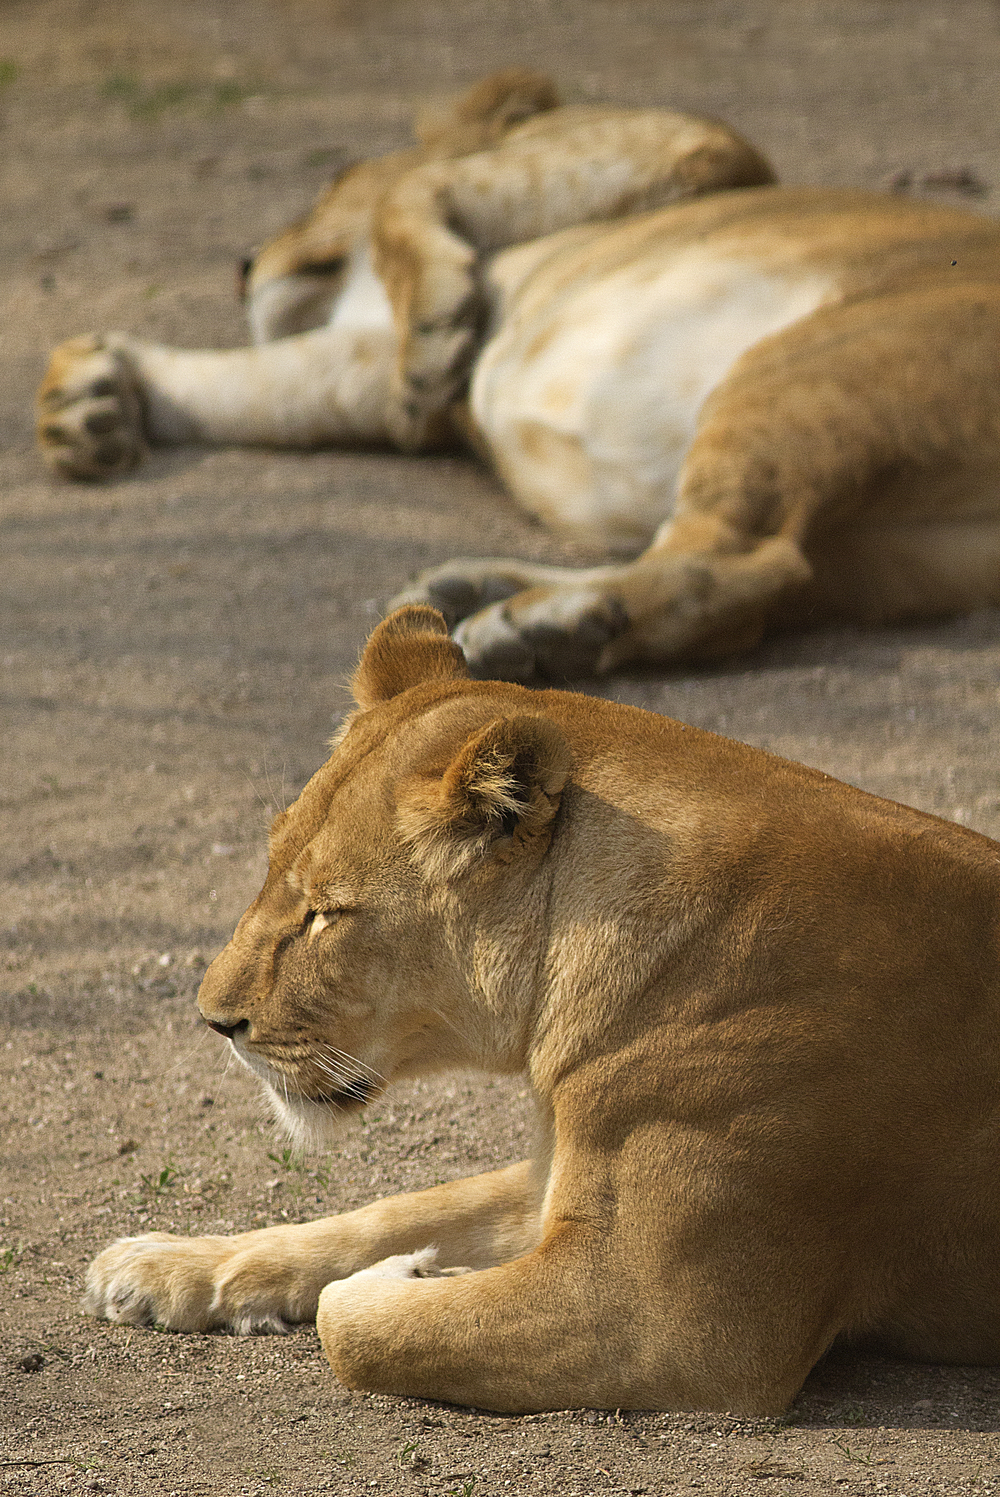 Resting after the meal Read about The lion (Panthera leo) Comments